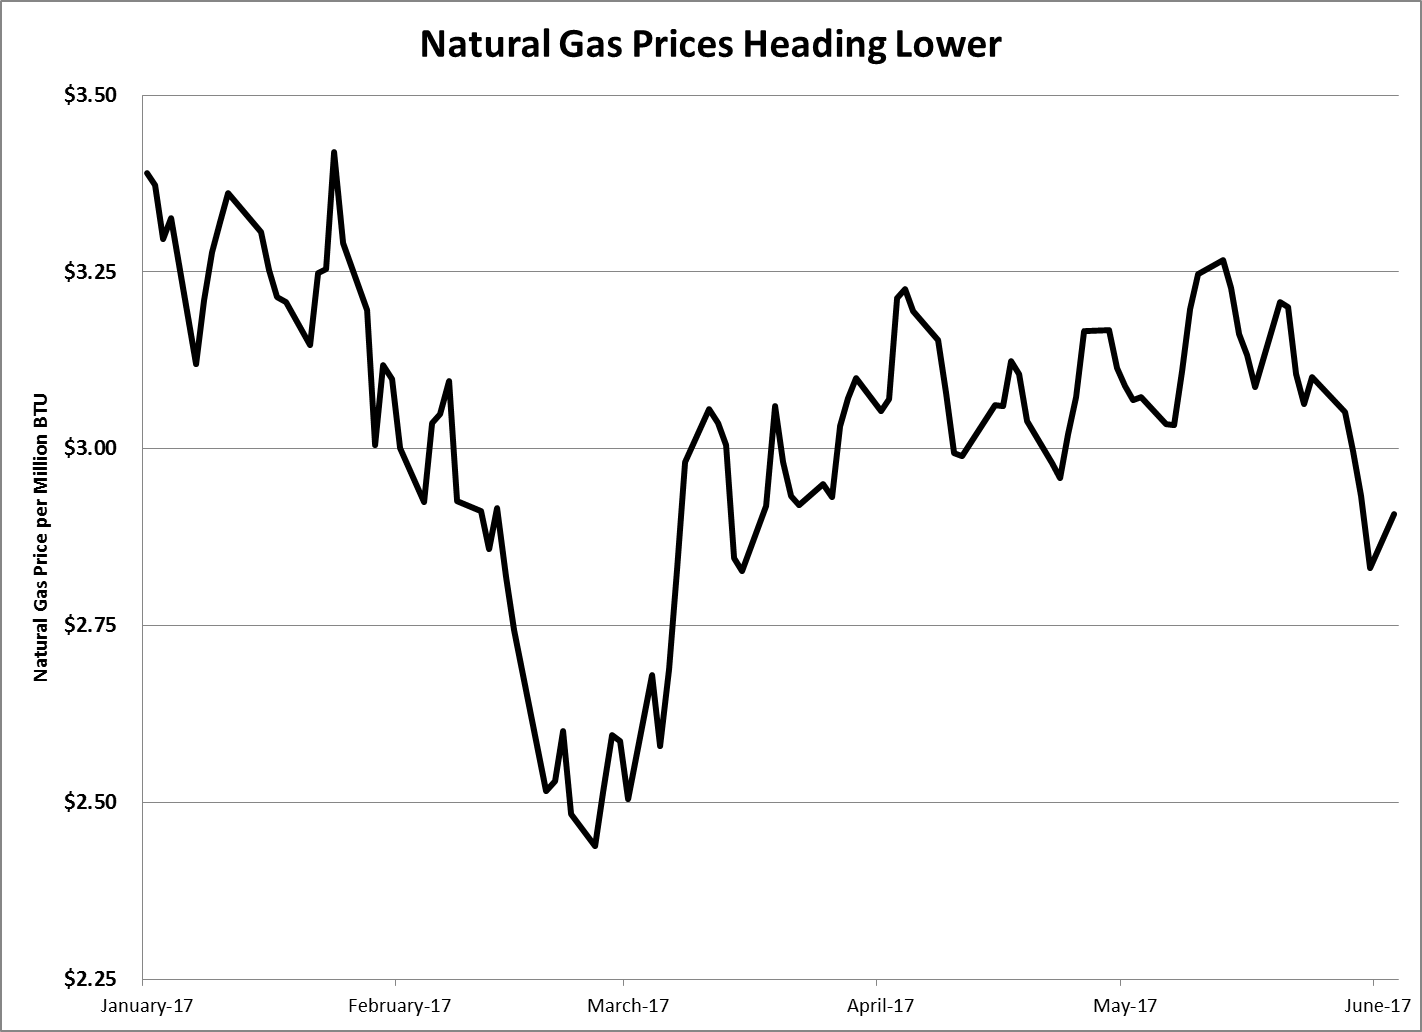 Back on April 21, I told readers of Winning Investor Daily that rising natural gas prices couldn't last. I was a little early, but the trend finally turned.